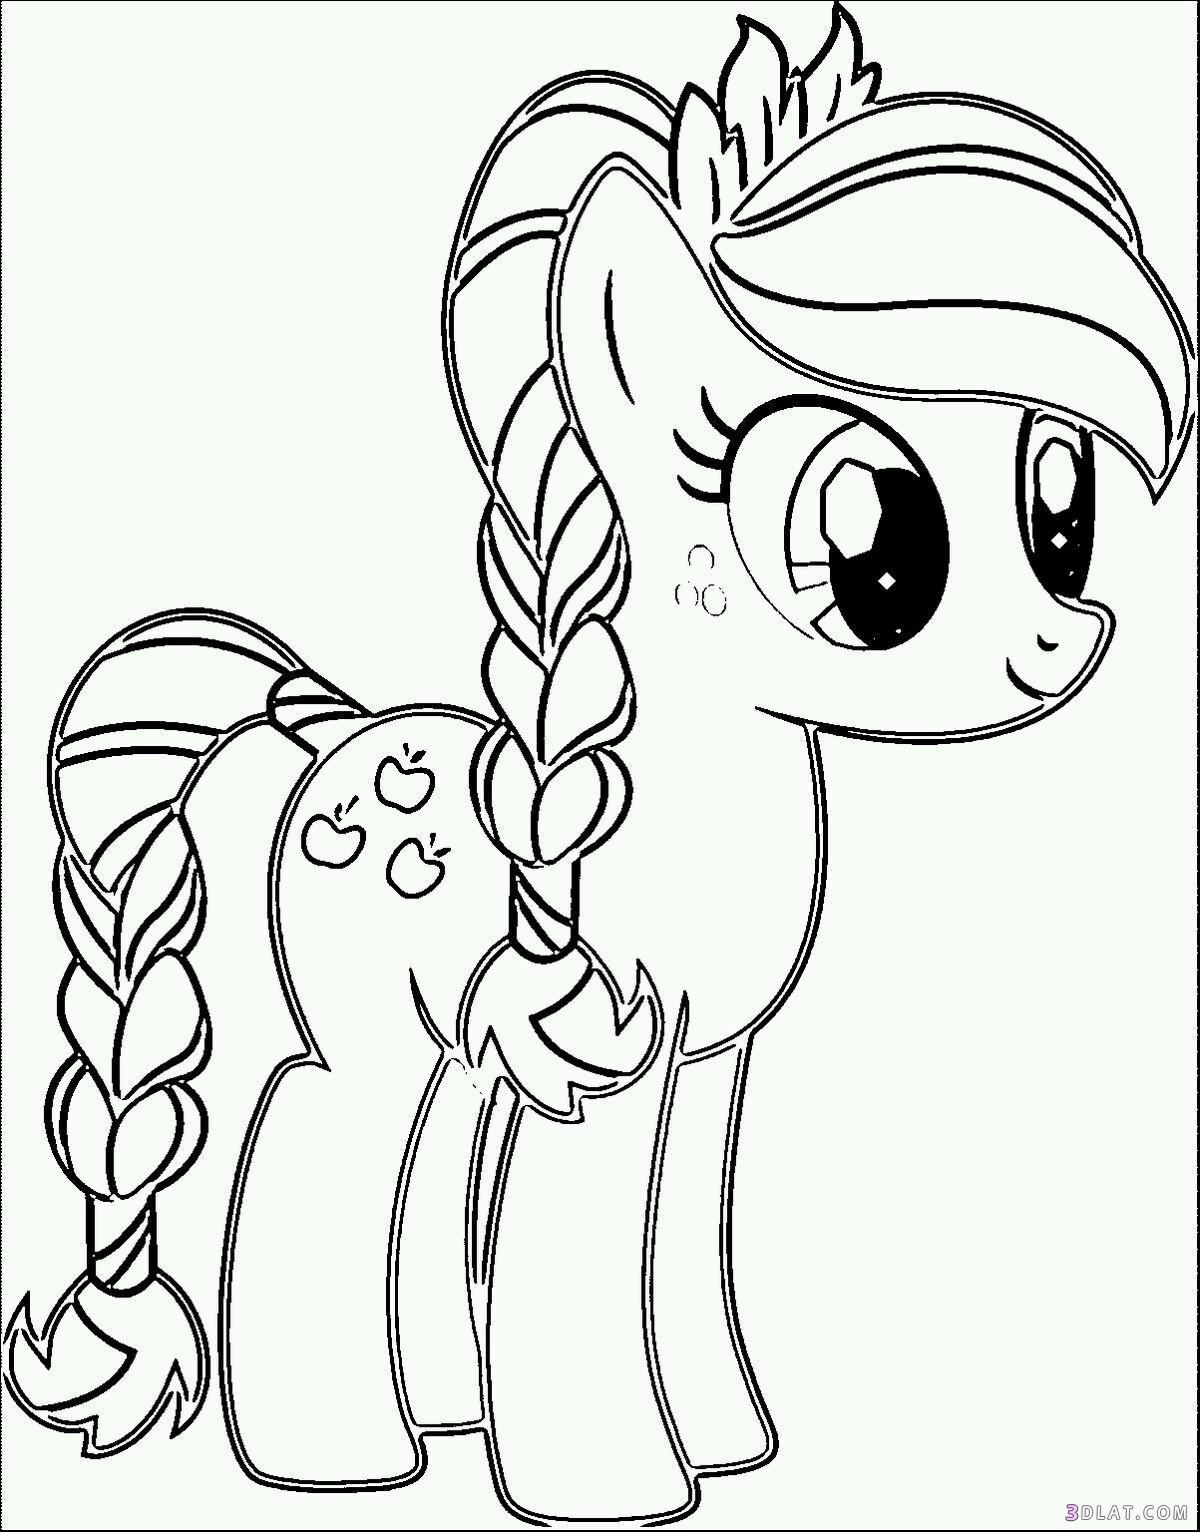 my little pony apple bloom coloring page free printable - HD 2499×3197